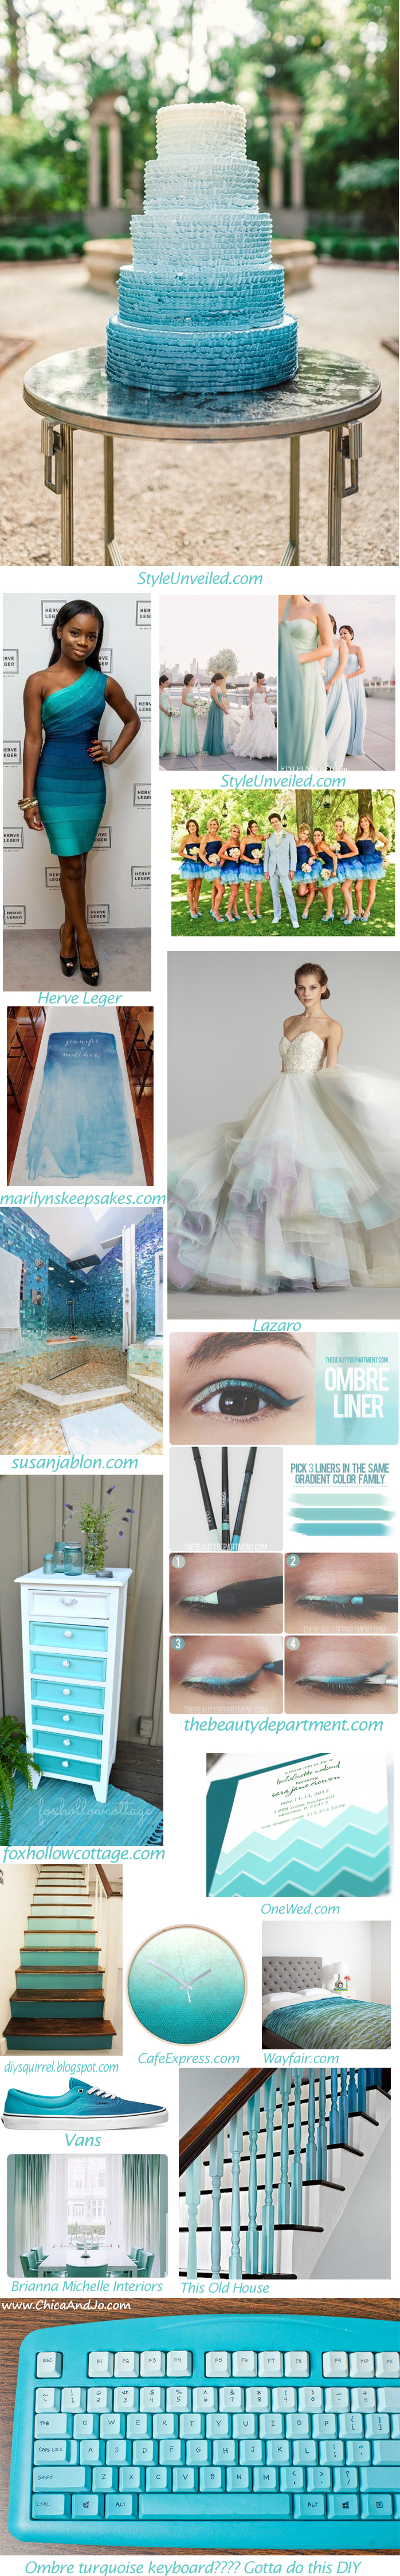 Turquoise Ombre Things!